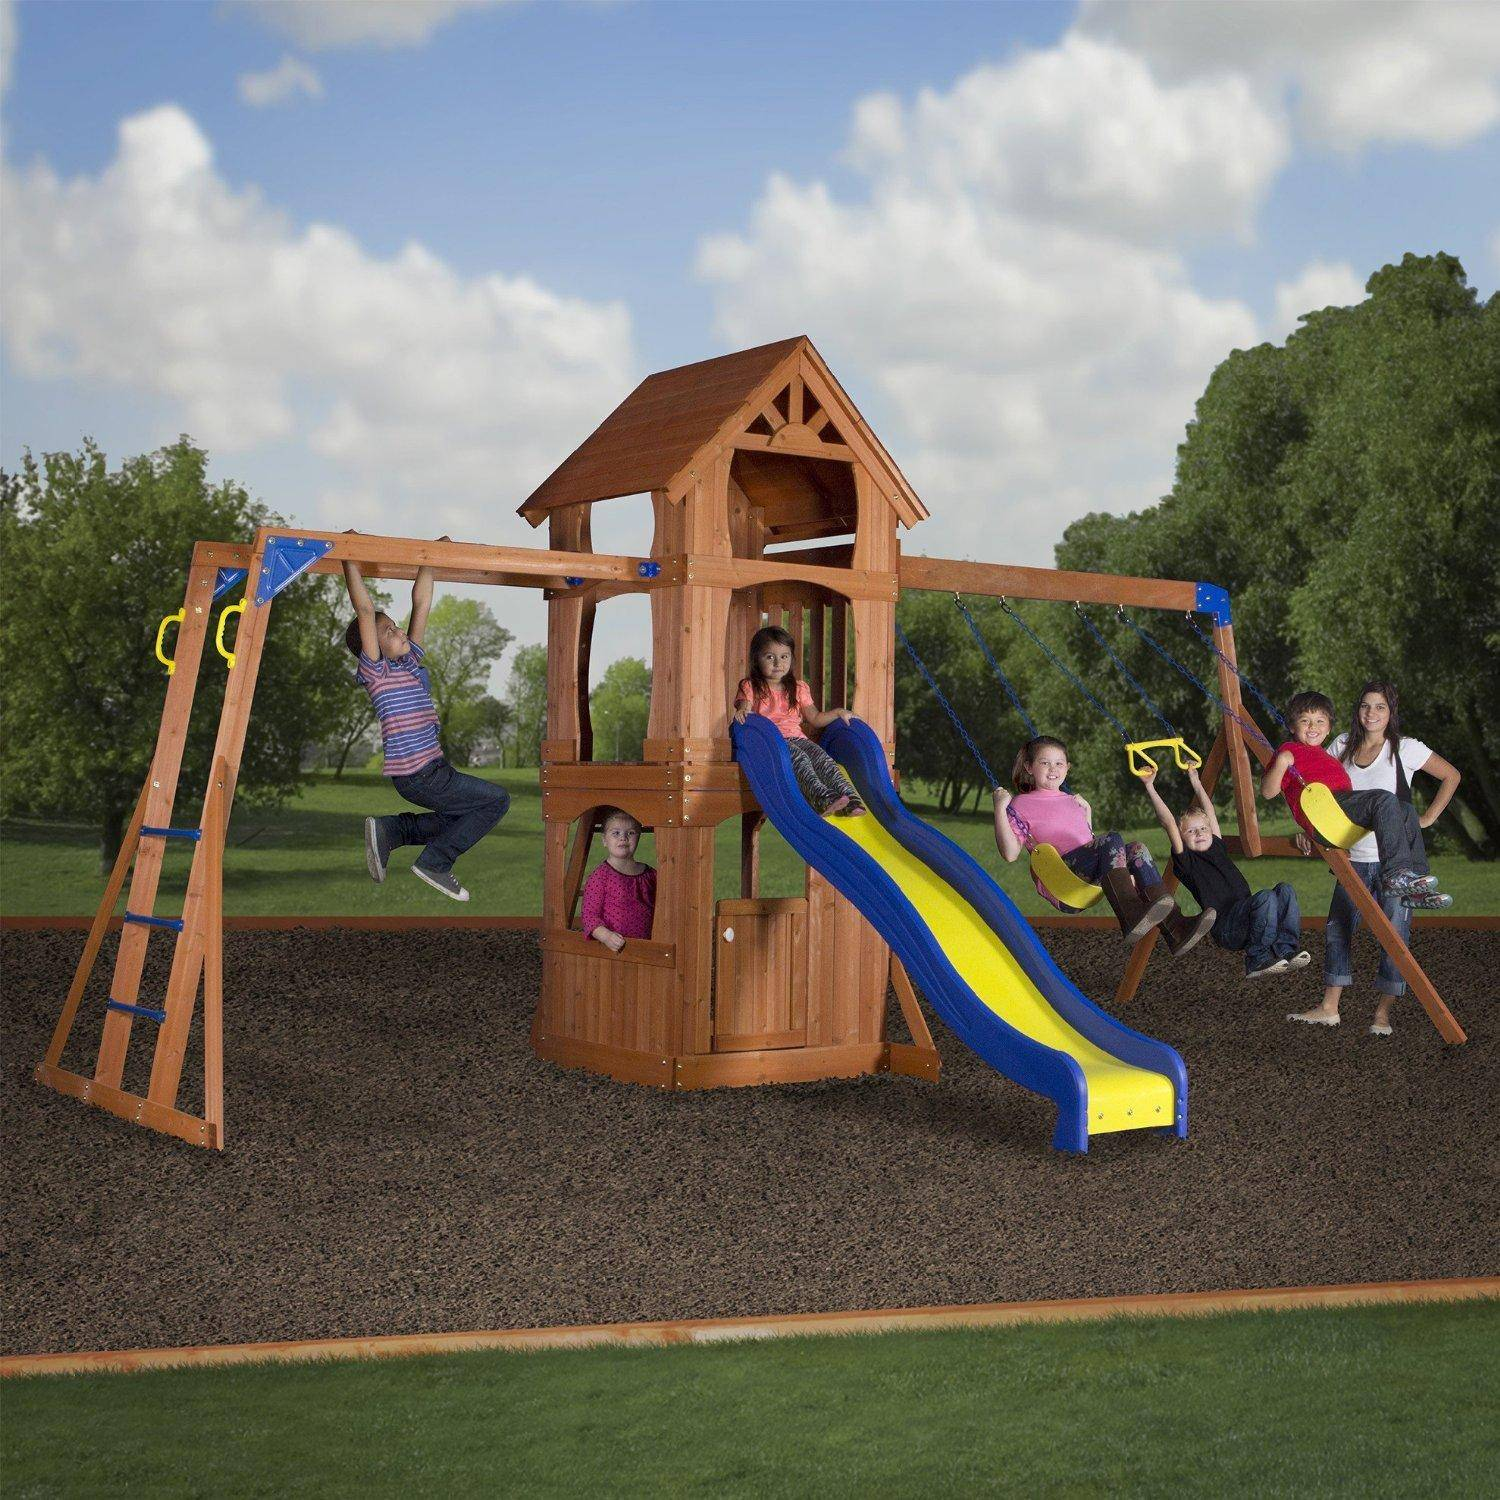 Swing Sets Sale at Walmart! Get Ready for Spring and Summer!